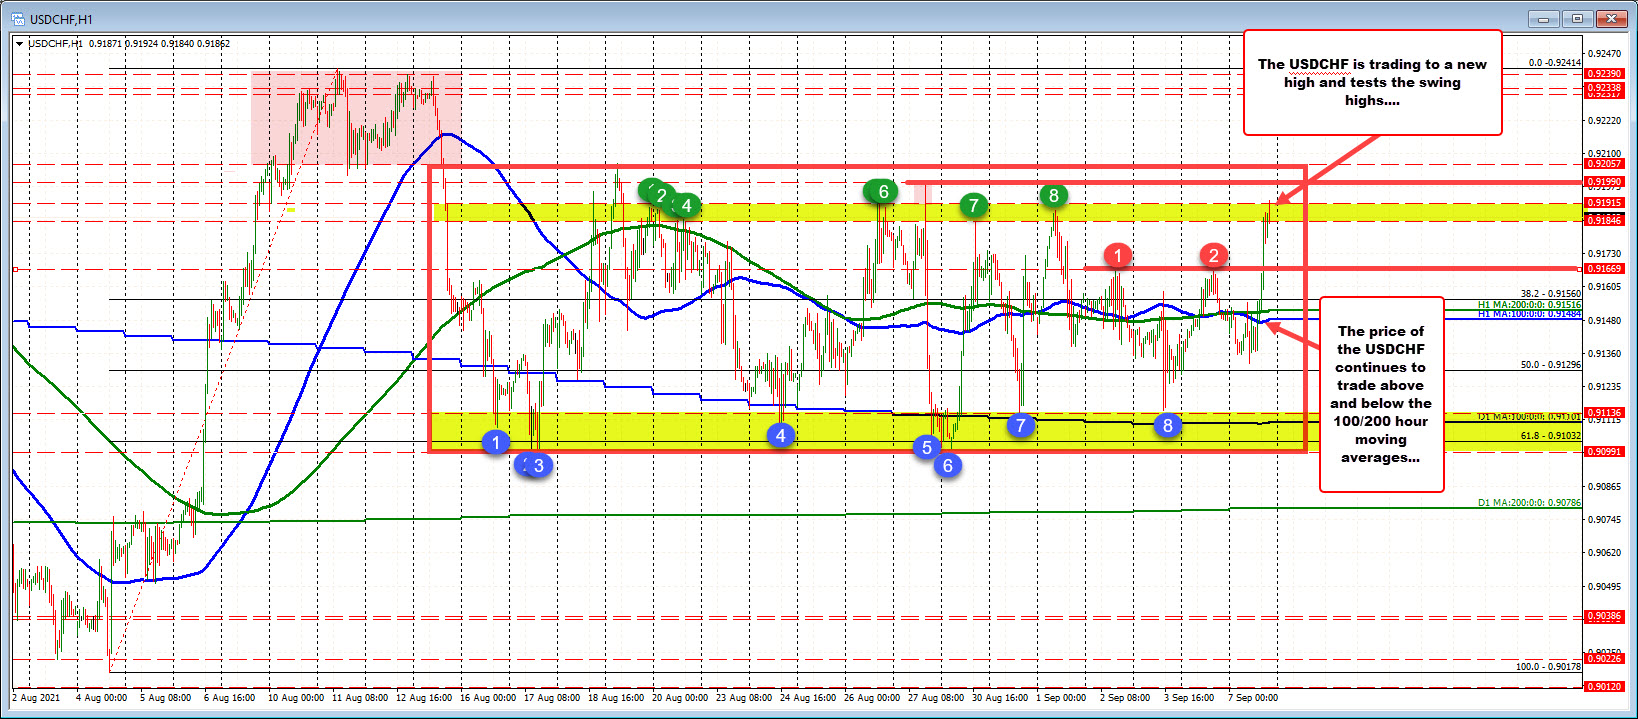 Can the traders push outside the up and down range?